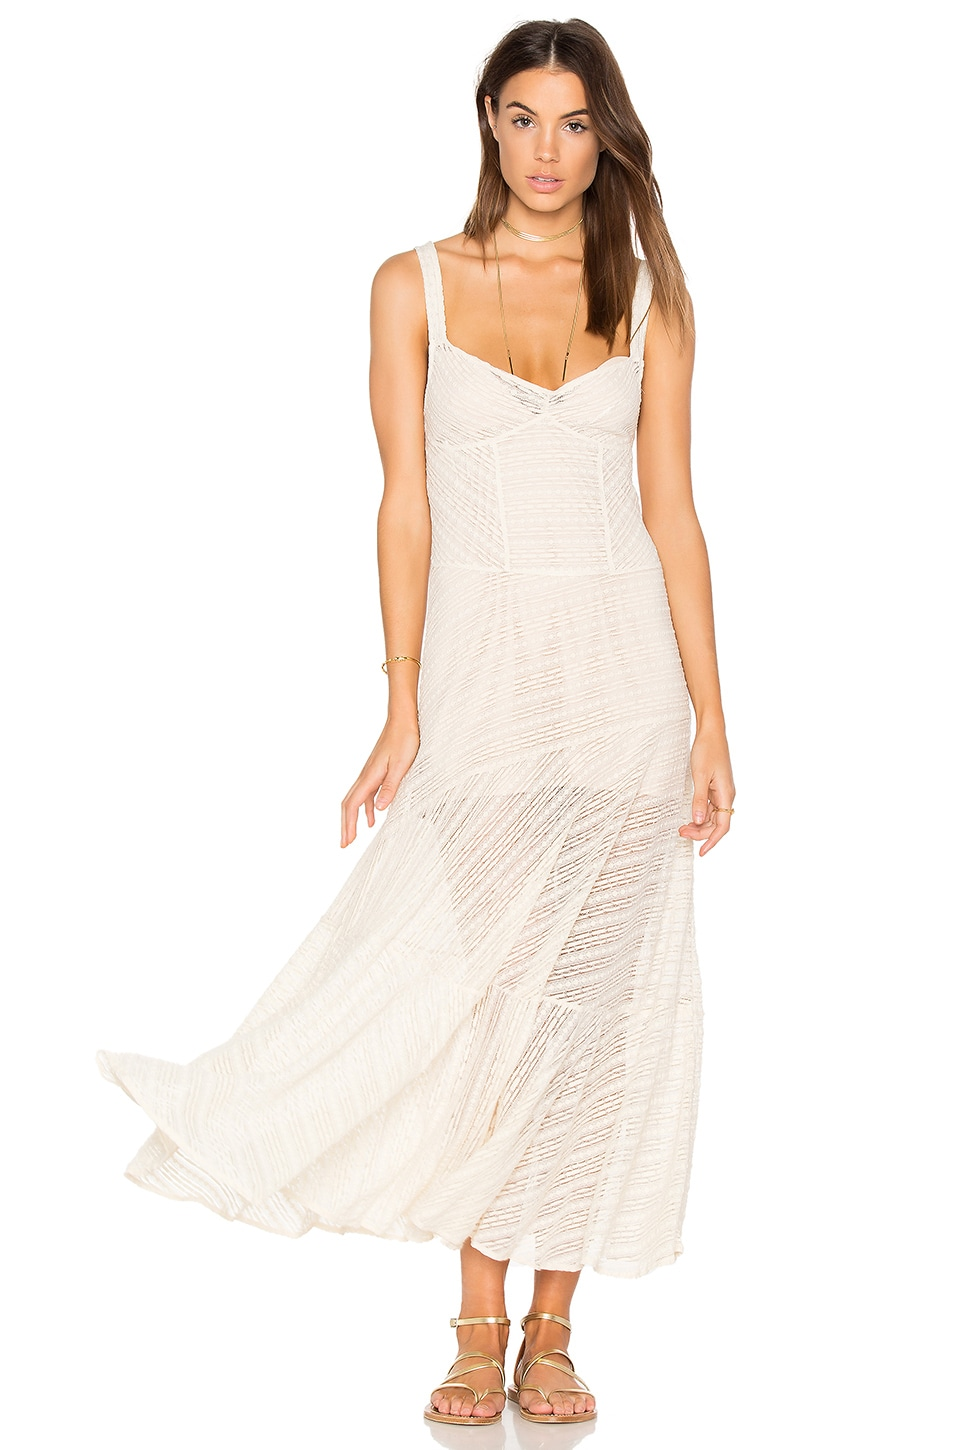 Free People Love Story Slip Dress in Ivory